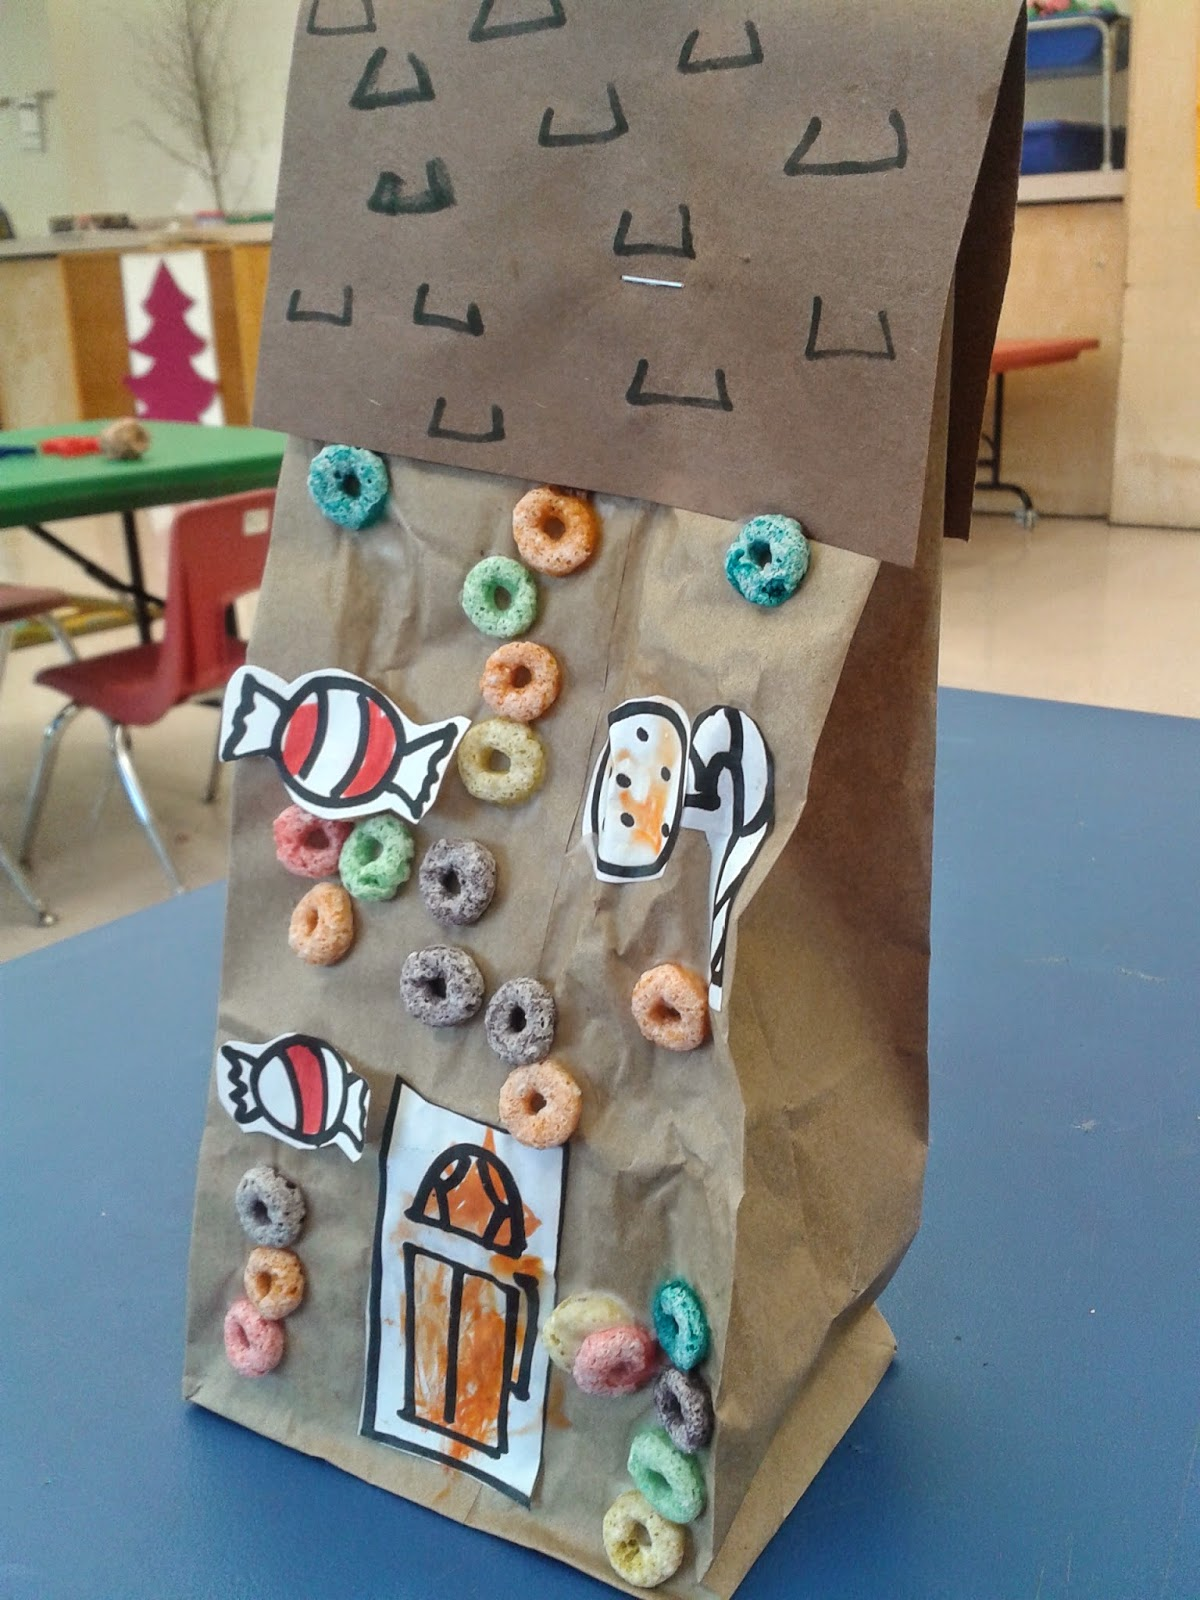 Gingerbread house free printables - The Children Coloured Paper Candies And A Door And Then Glued Those Onto A Lunch Bag Laid Flat On The Table